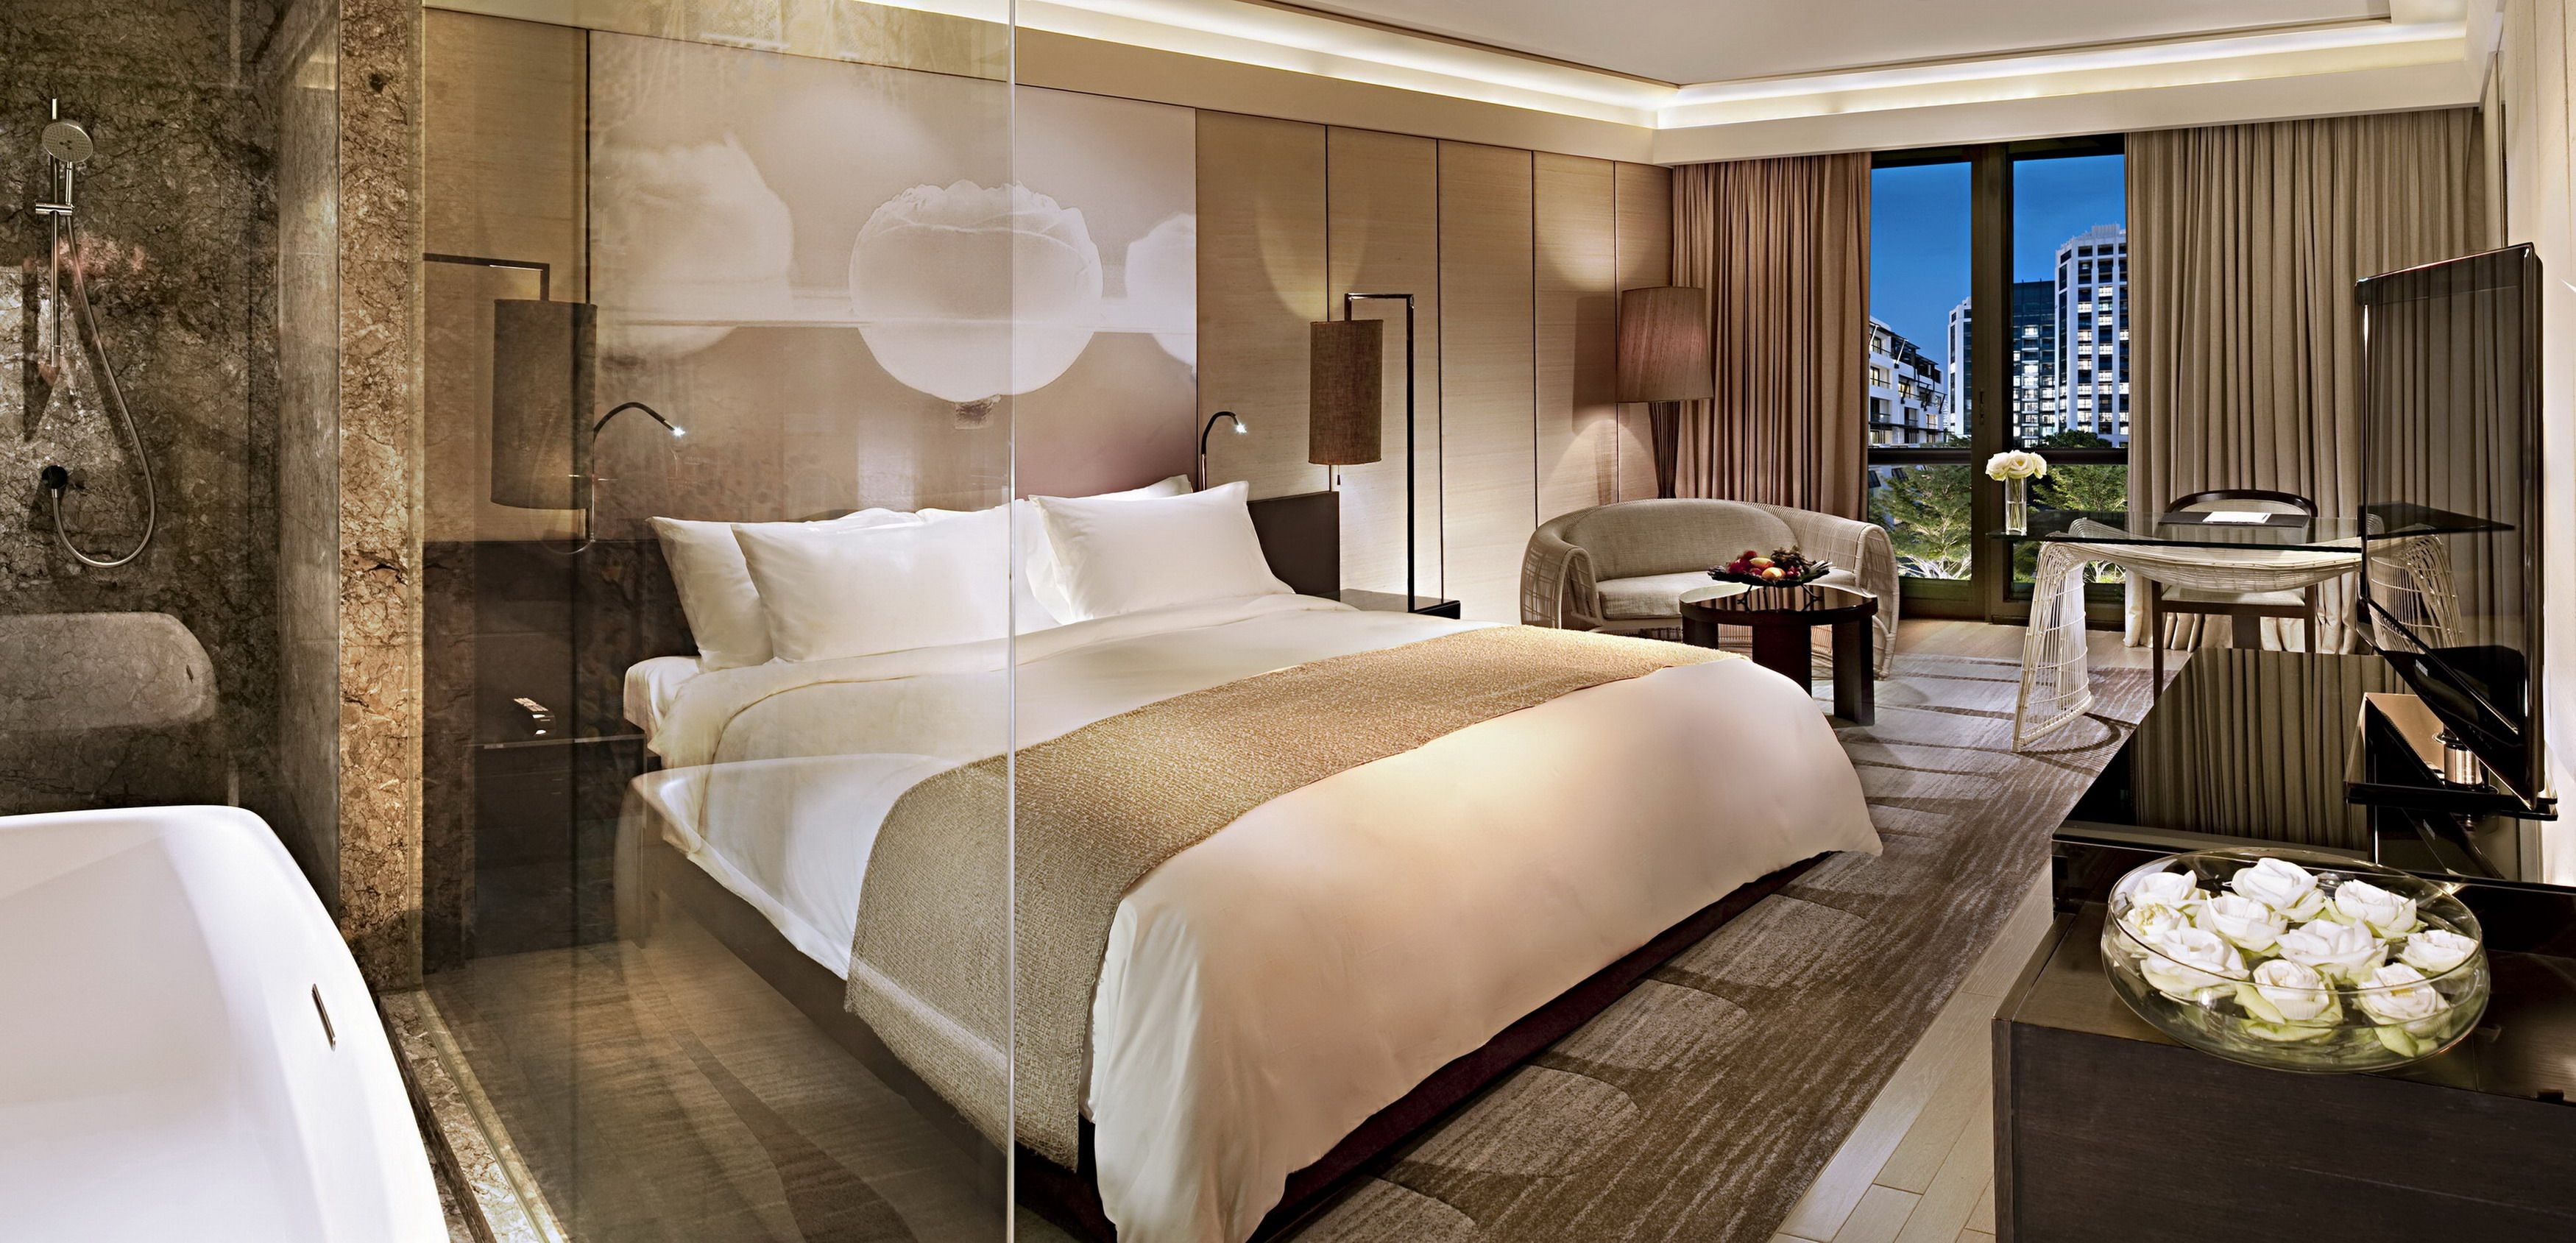 Luxury hotel rooms pictures new luxury kempinski hotel for Luxury bedroom inspiration